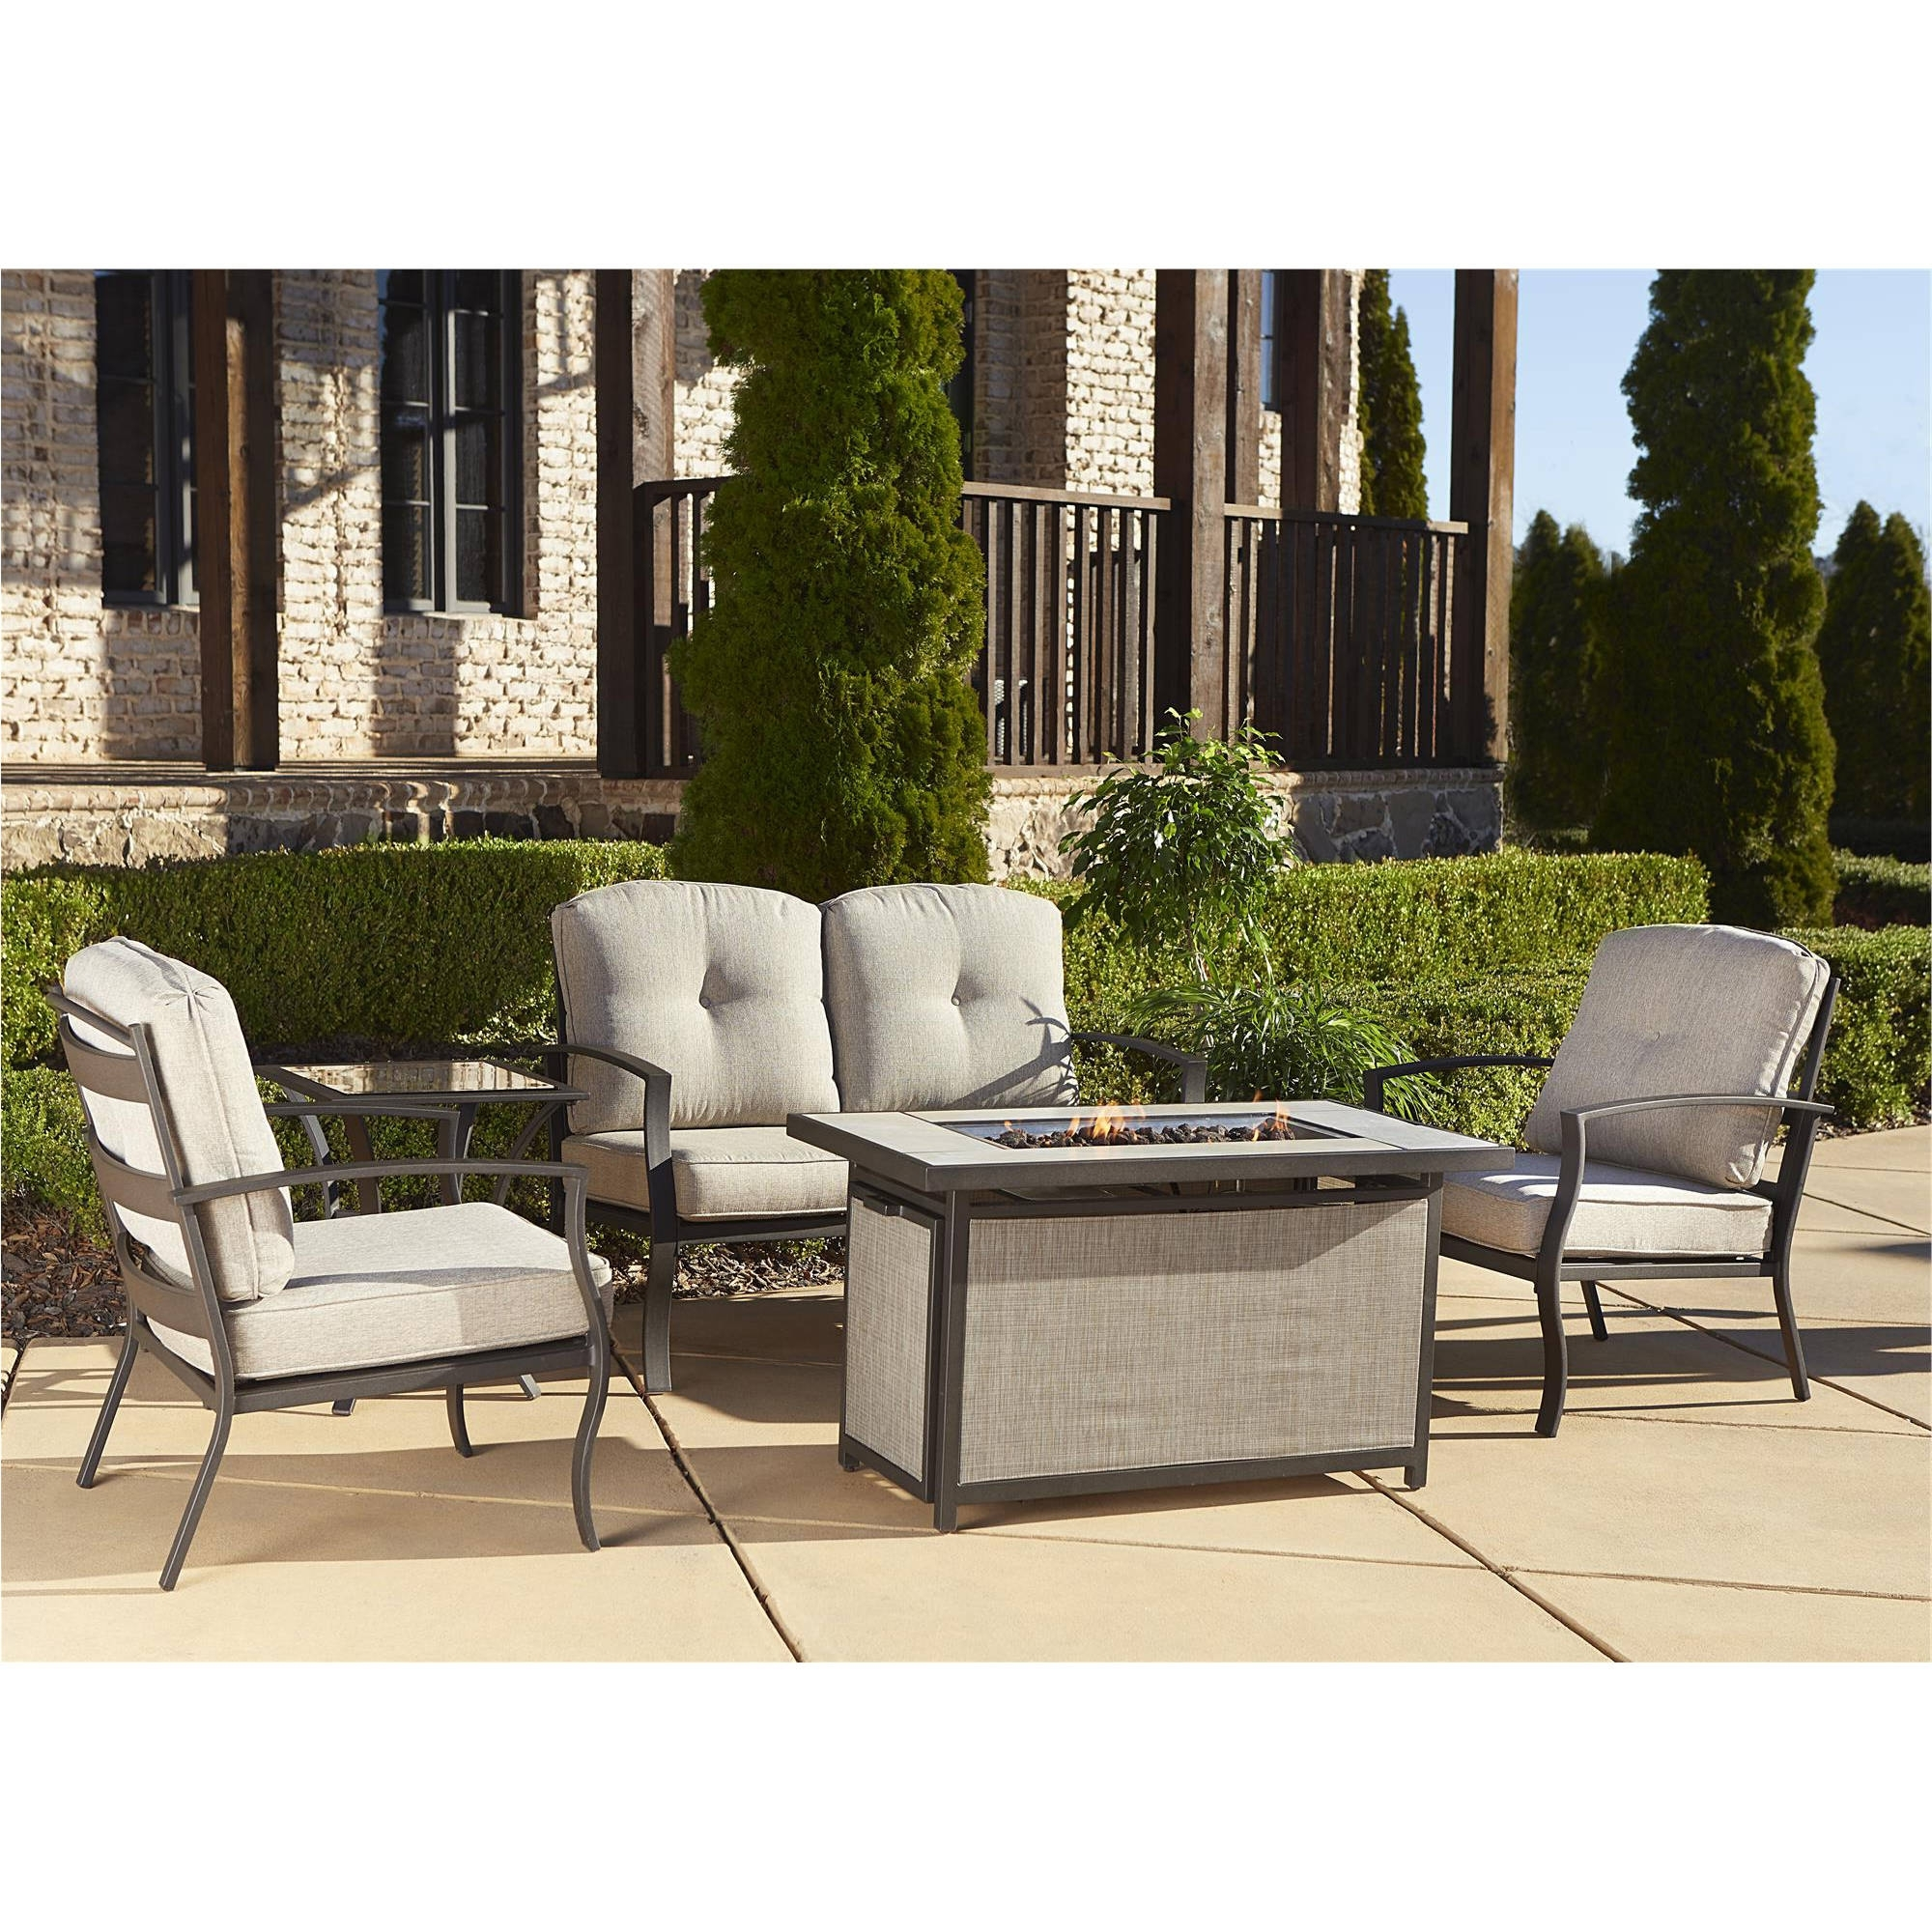 Cosco Outdoor 5 Piece Serene Ridge Aluminum Patio Furniture For Current Patio Furniture Conversation Sets With Fire Pit (View 3 of 20)